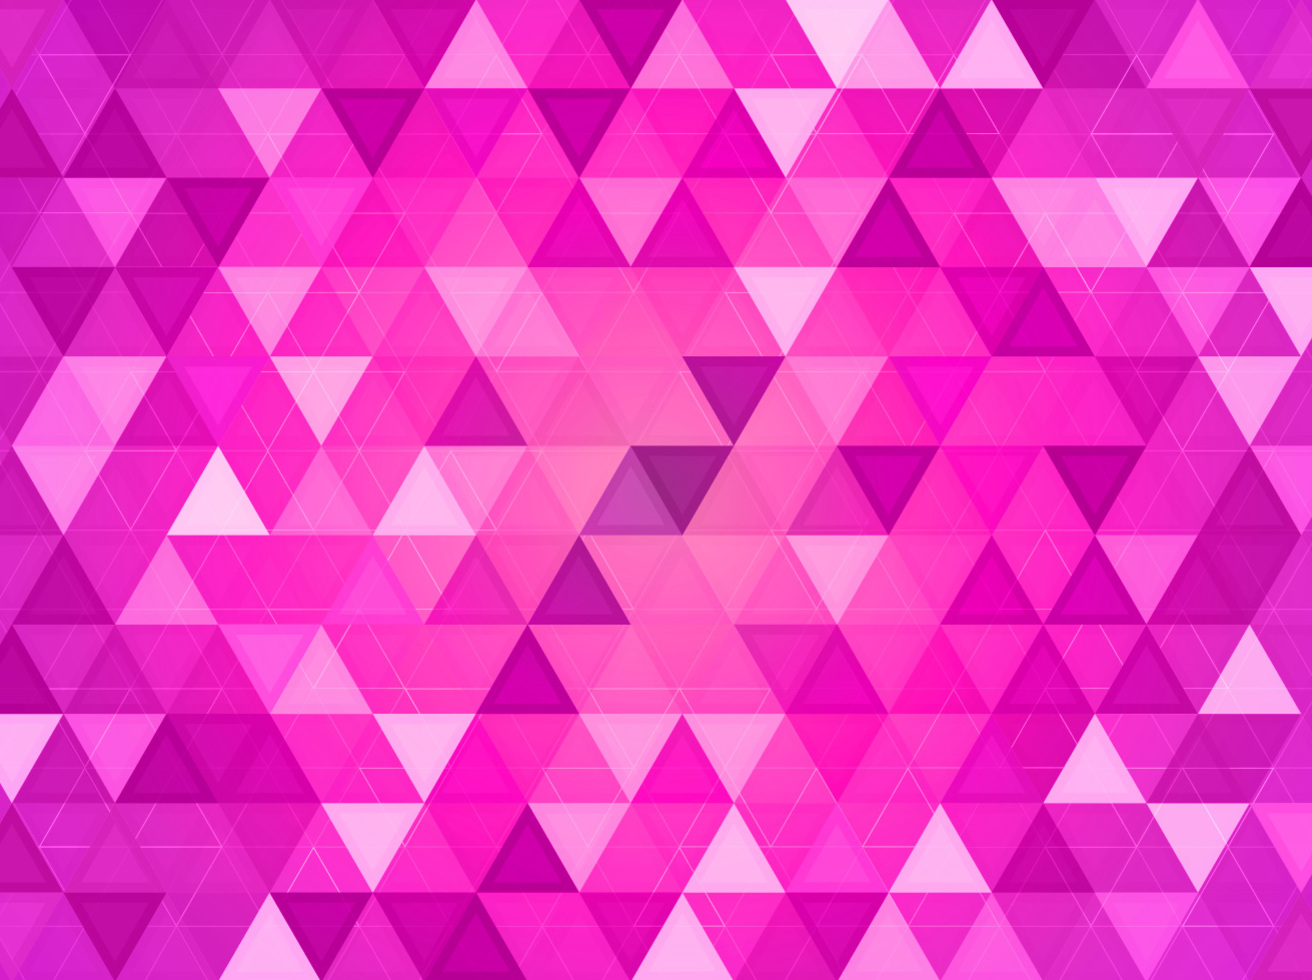 Pink Triangles Geometric Background Vector